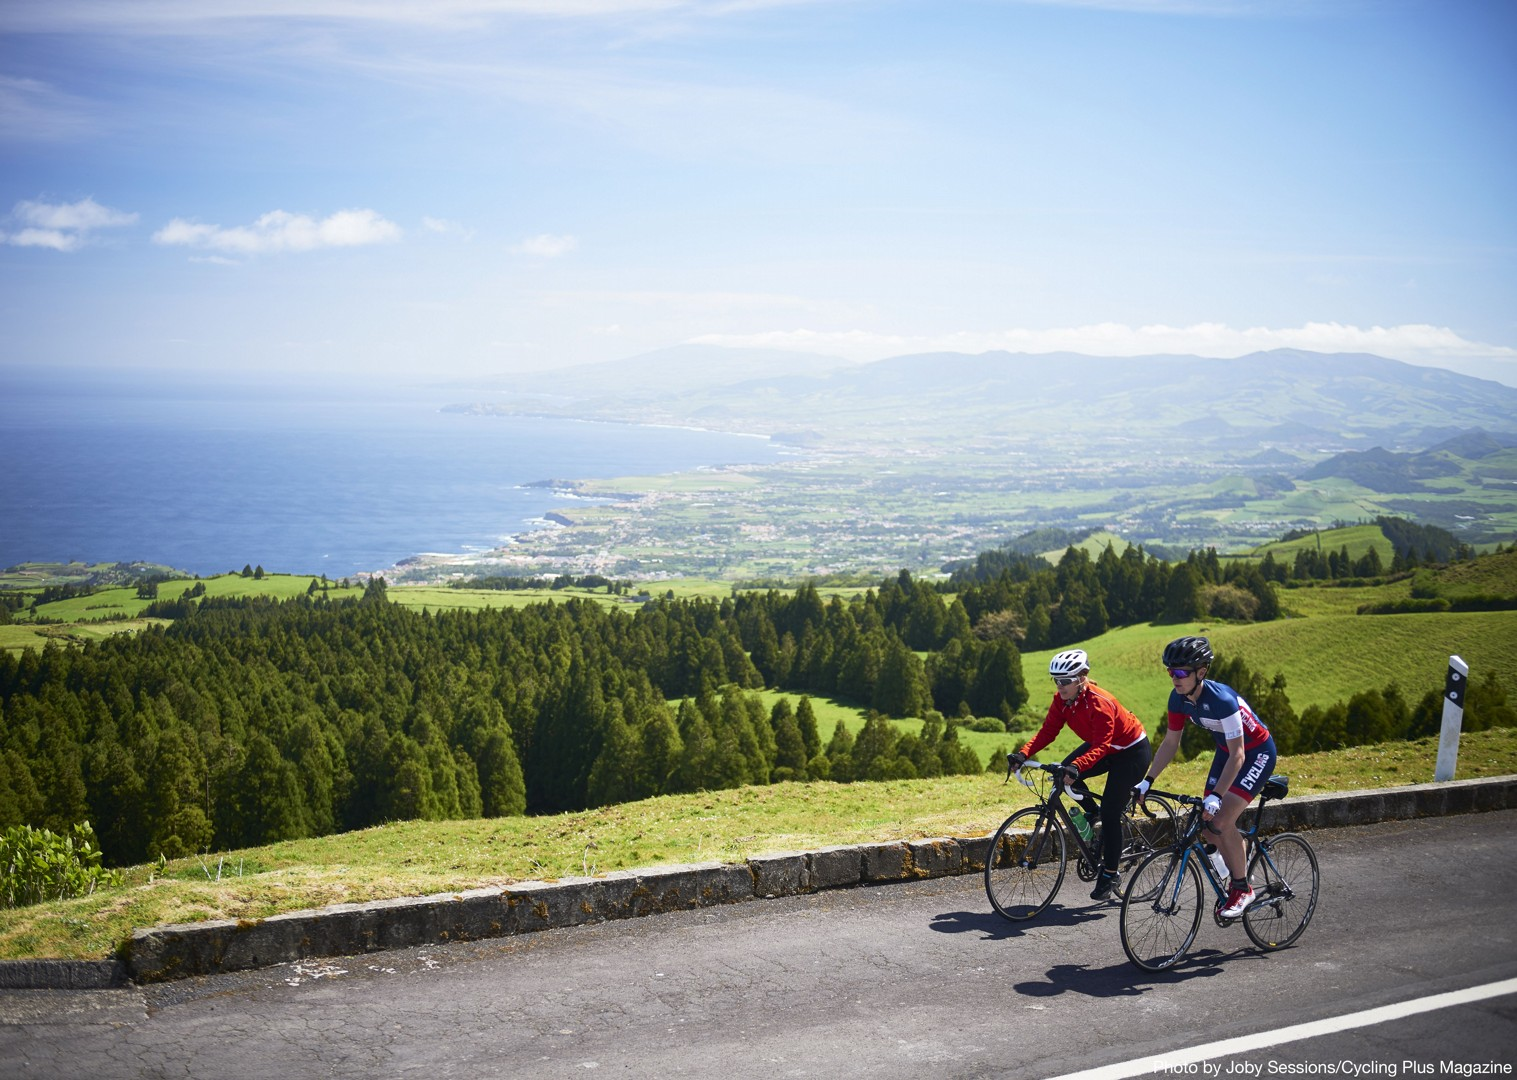 road-cycling-holiday-sete-citades-the-azores-with-saddle-skedaddle.JPG - The Azores - Lost World of Sao Miguel - Guided Road Cycling Holiday - Road Cycling